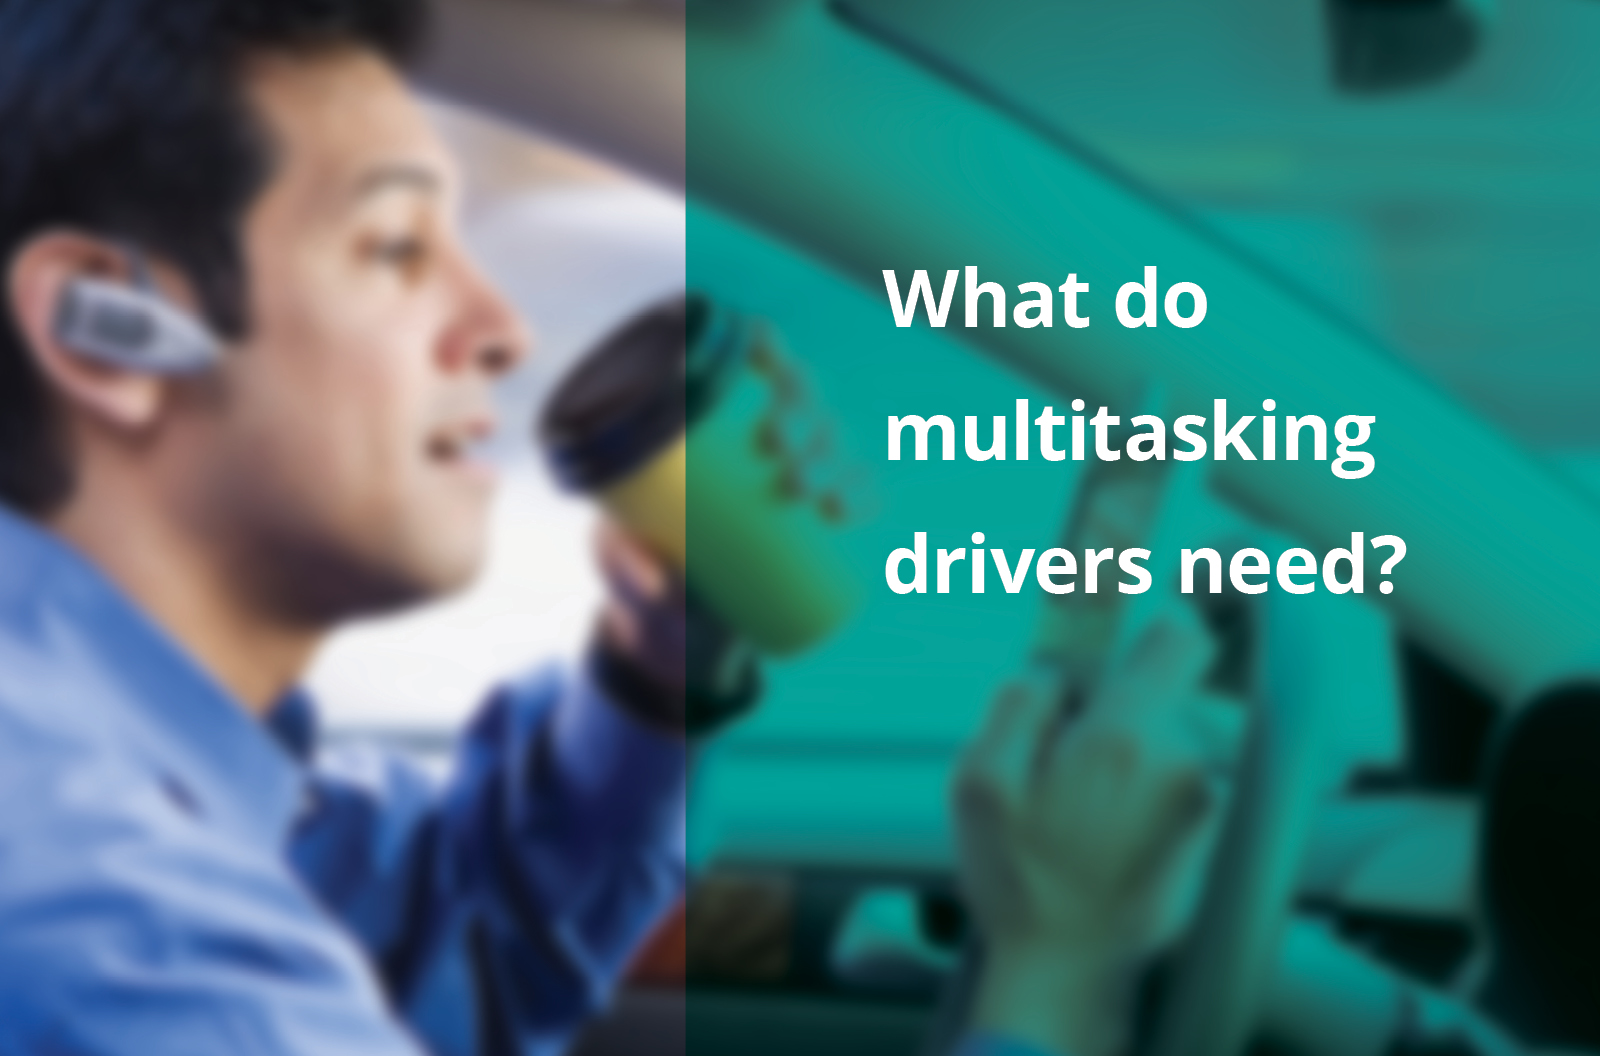 What do multitasking drivers need?